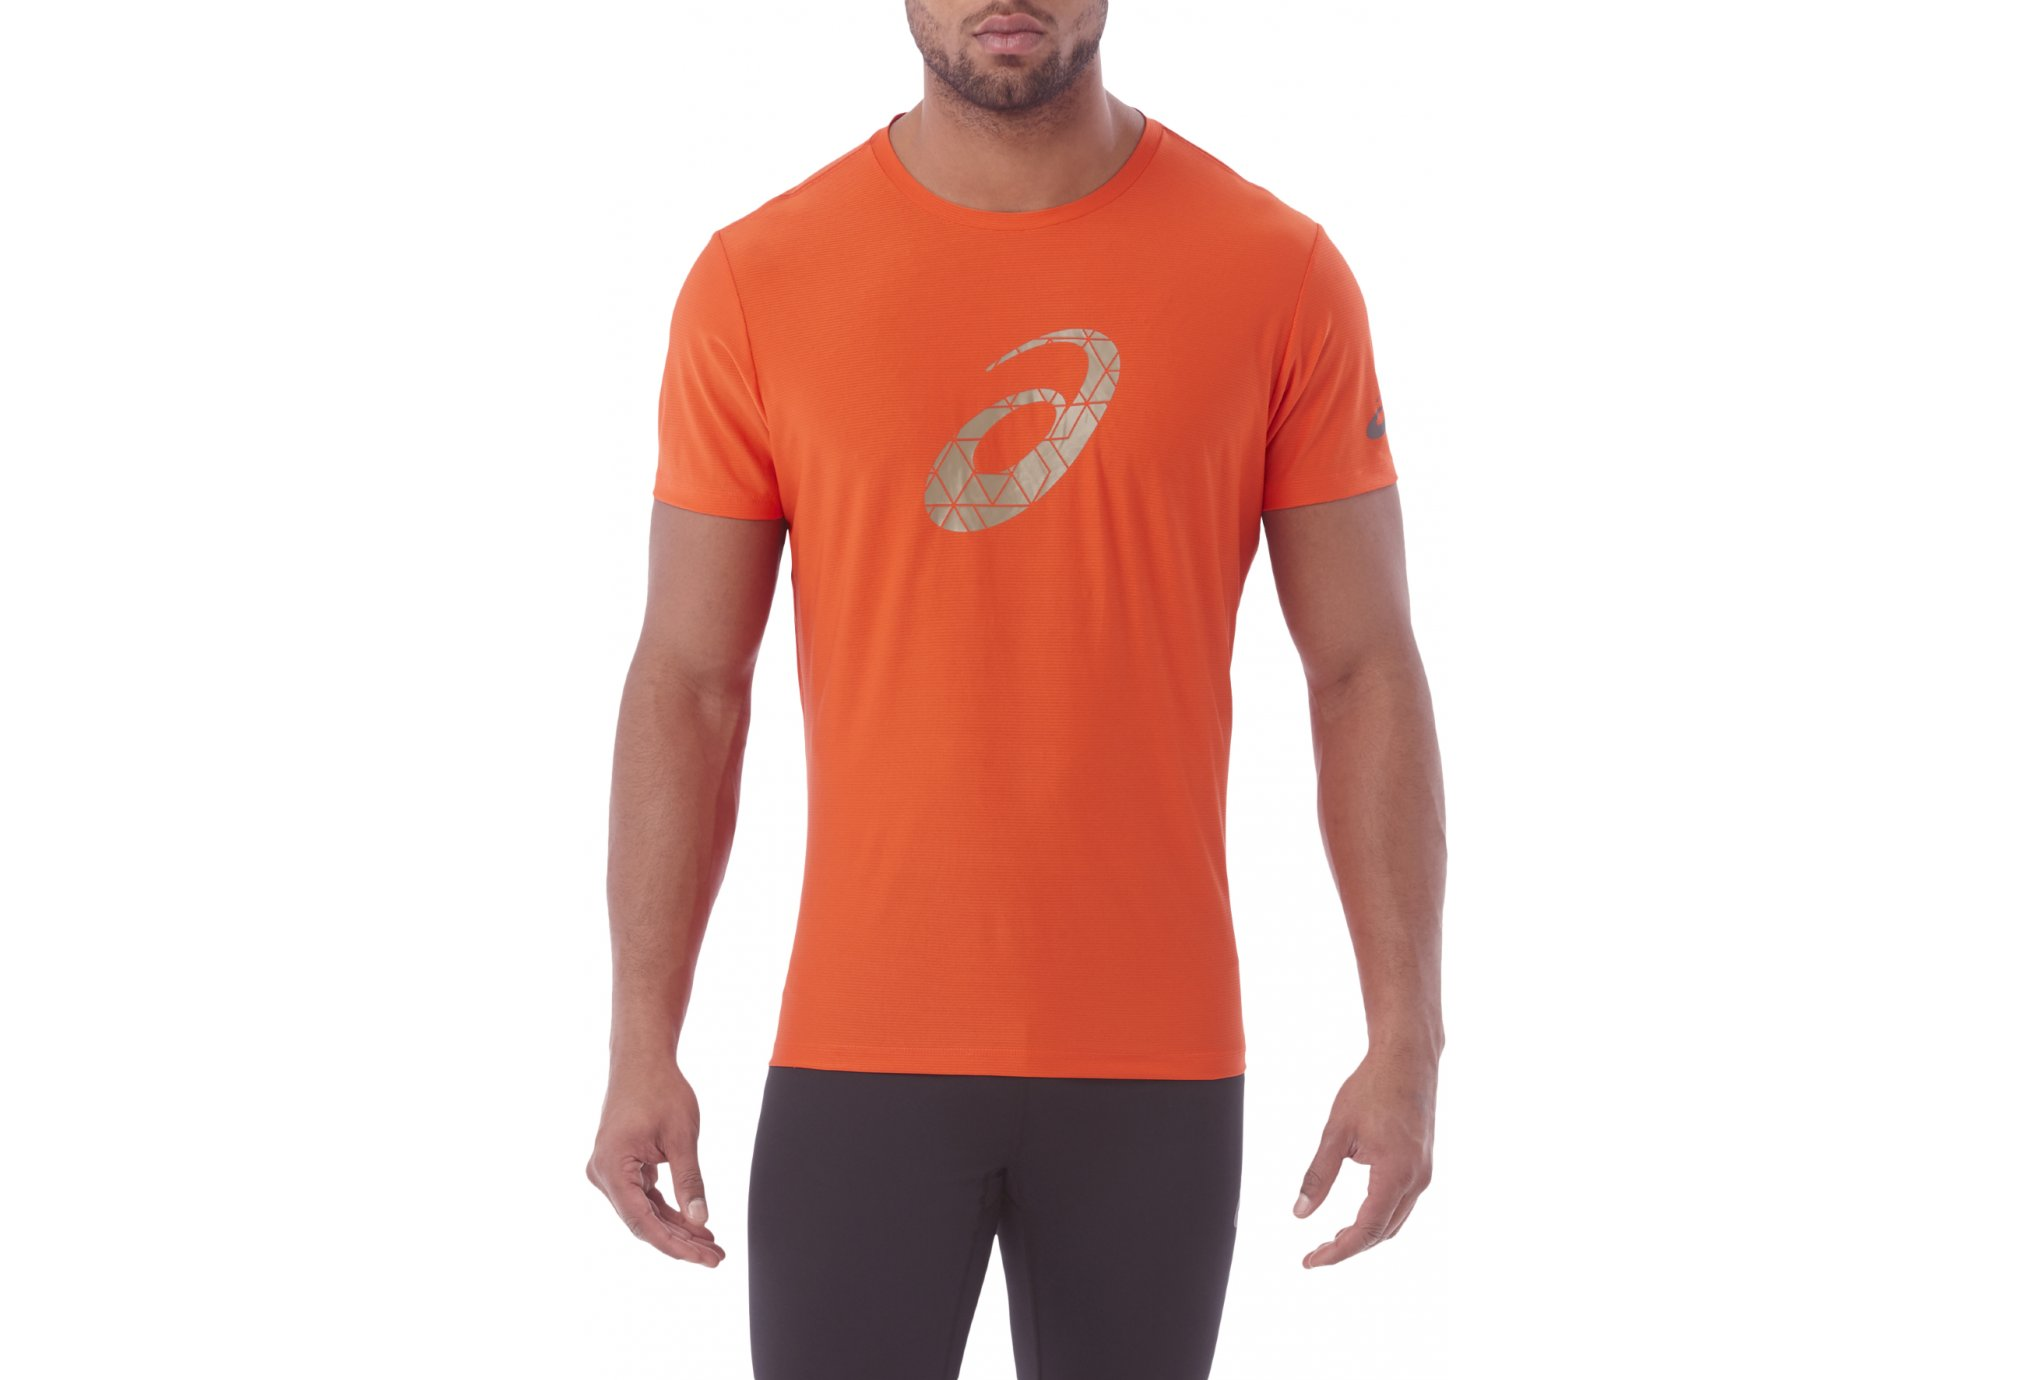 Asics Graphic Top M vêtement running homme